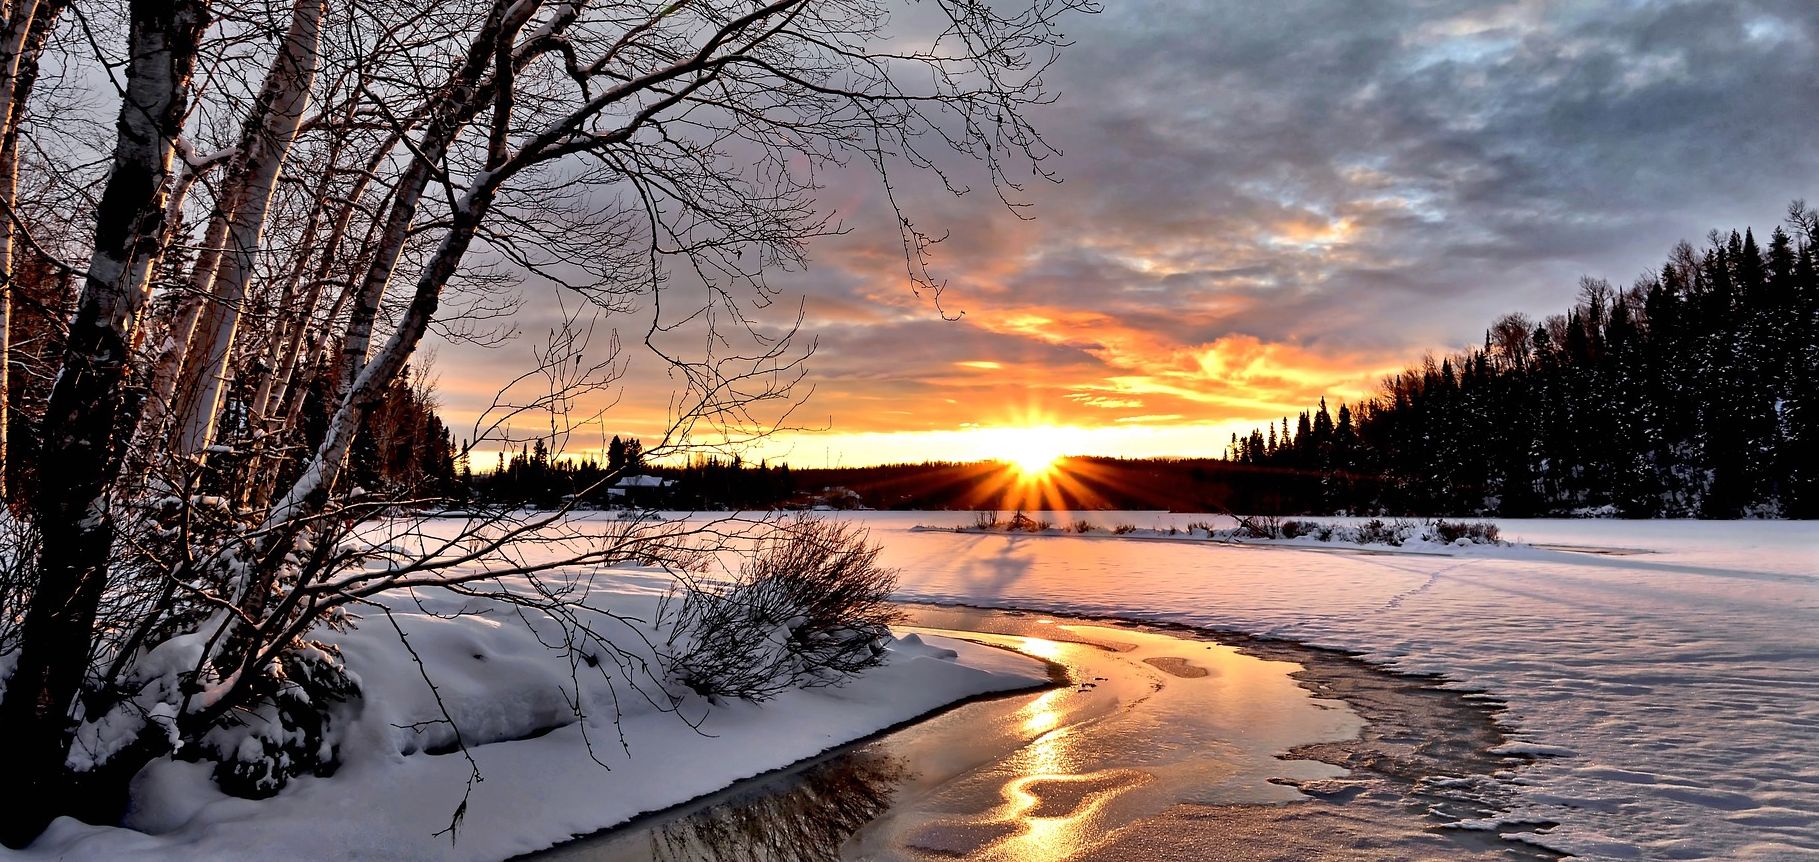 snow, sun, and frozen river